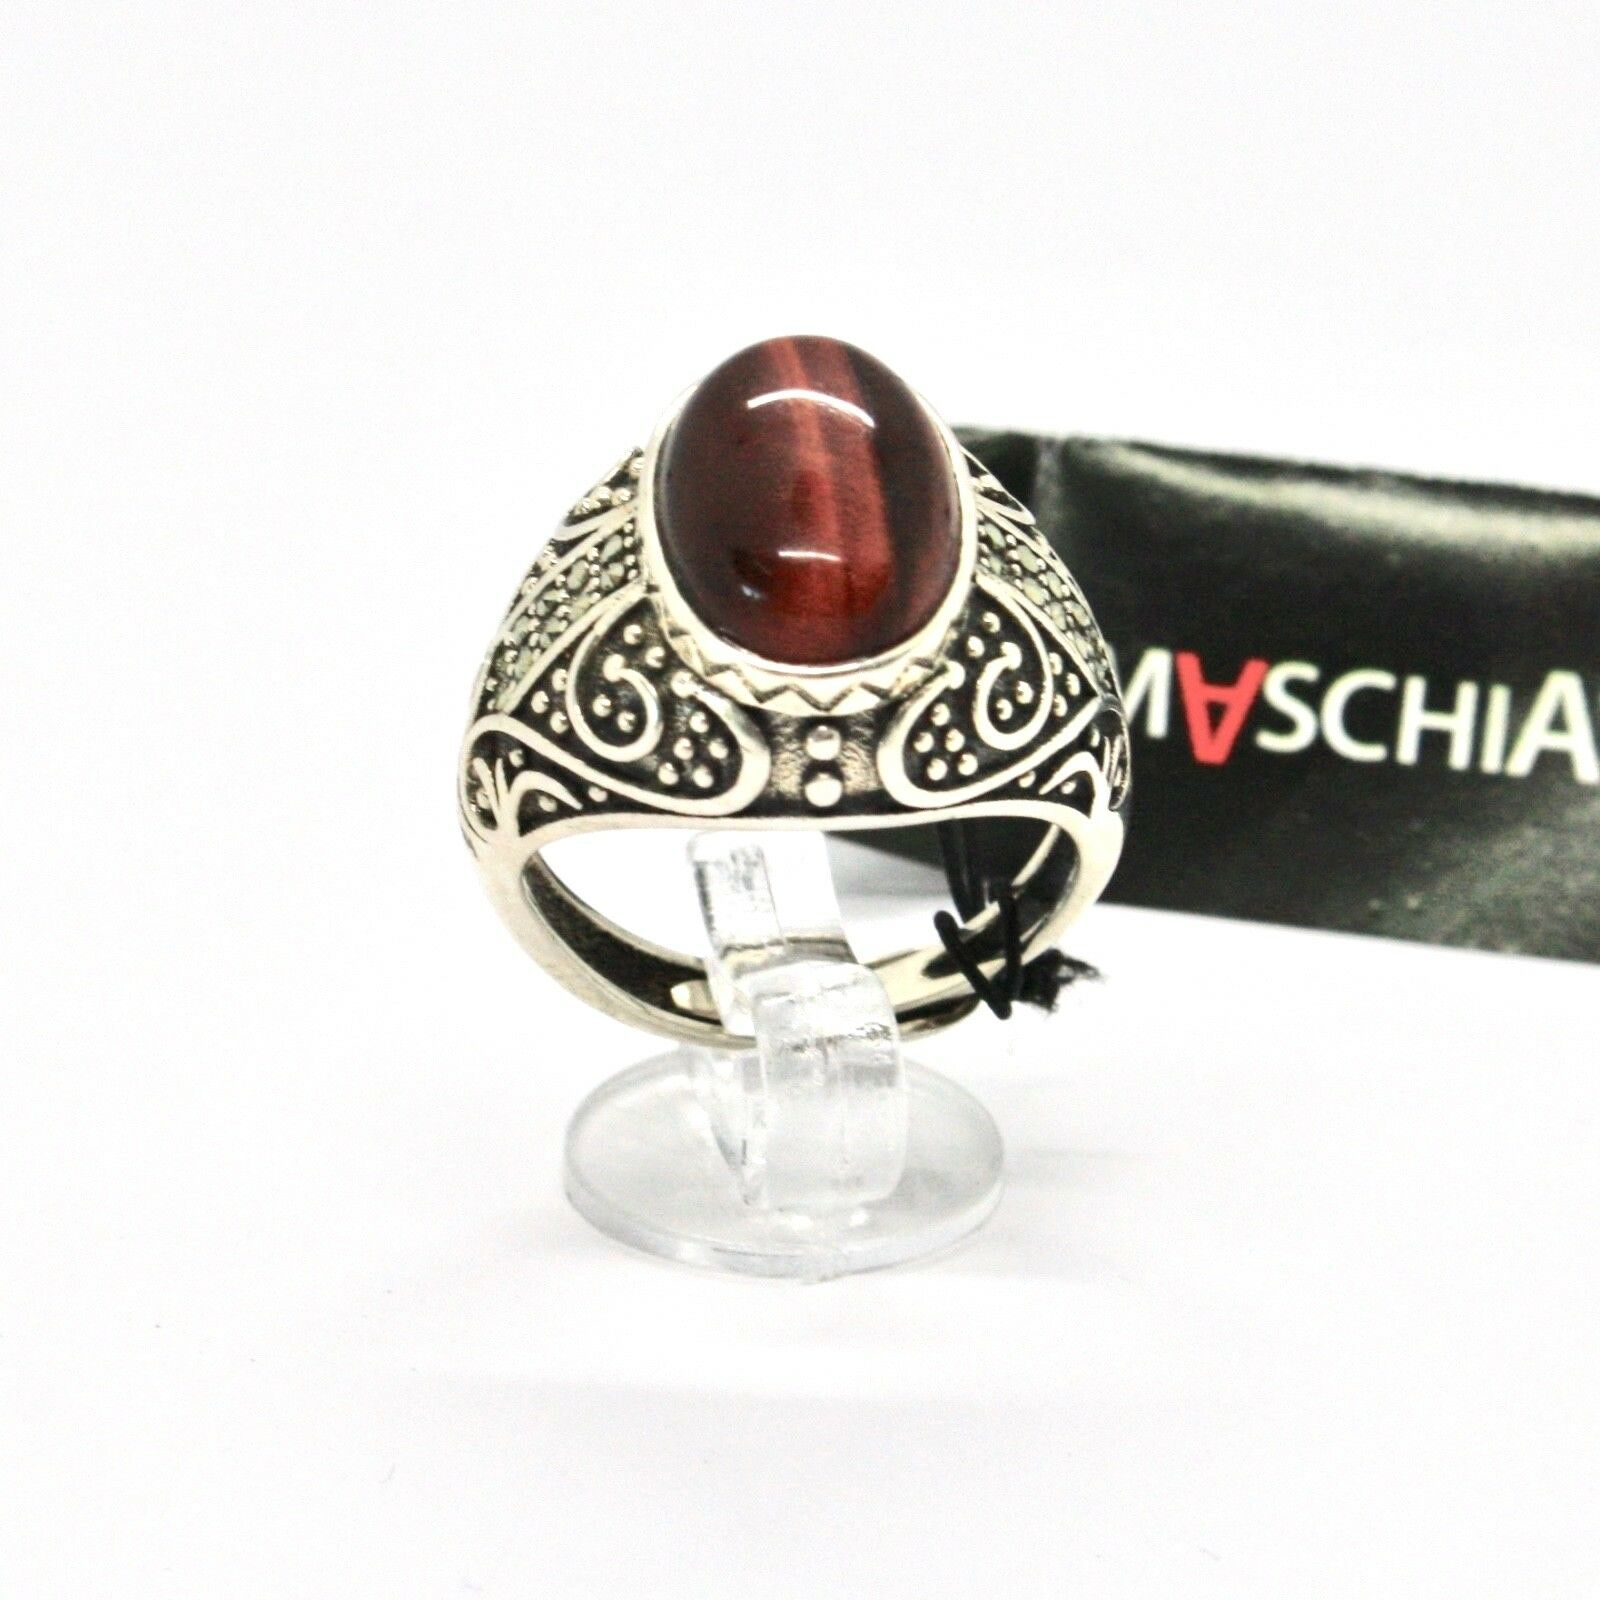 Silver Ring 925 with Tiger's Eye and Marcasite Made in Italy by Maschia